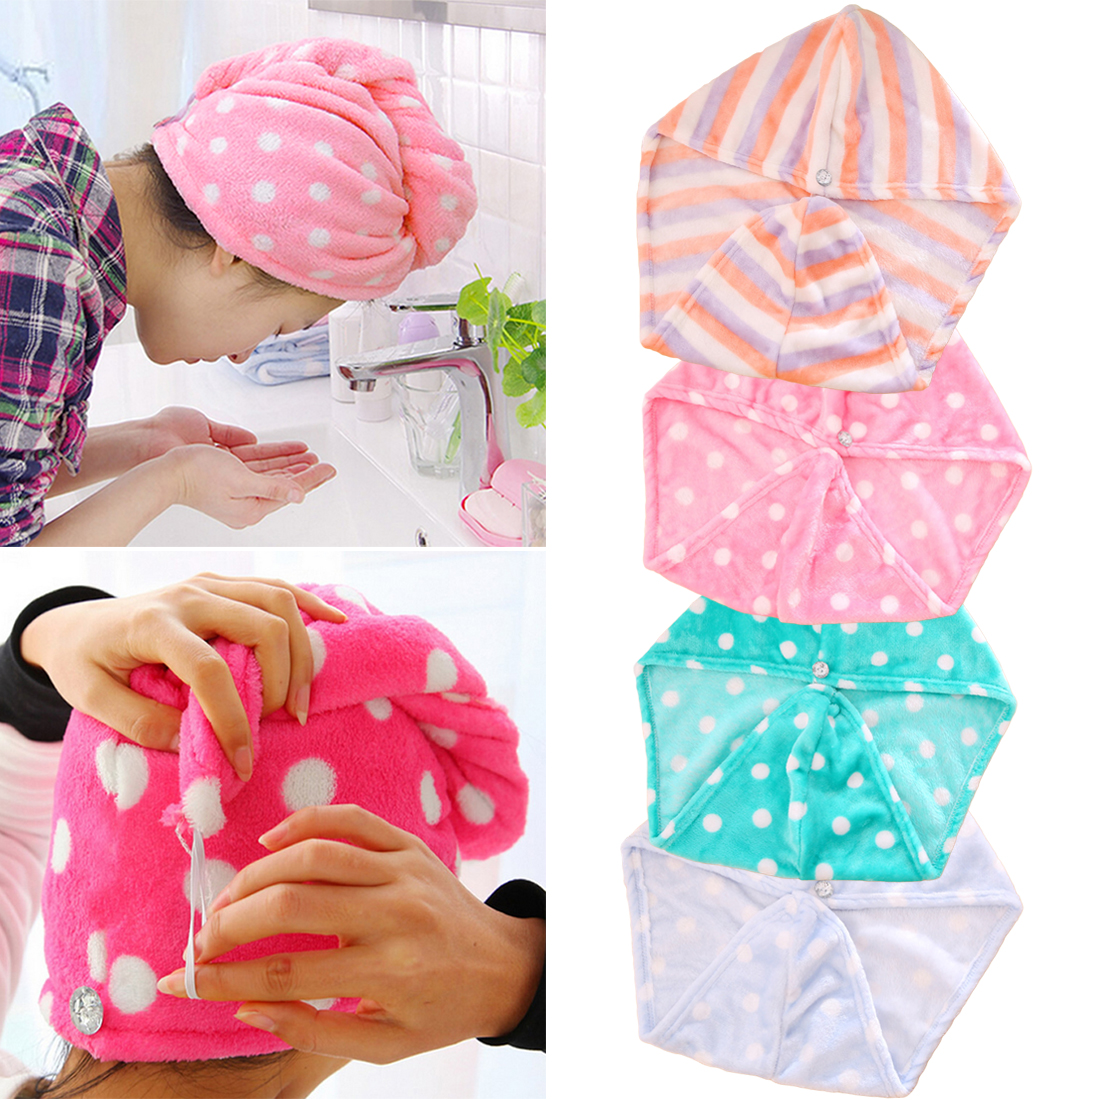 Magic Quick-dry Bath Hair Towels Womens Girls Lady's Dot Drying Towel Head Wrap Hat Makeup Cosmetics Cap Bathing Tool 1pc